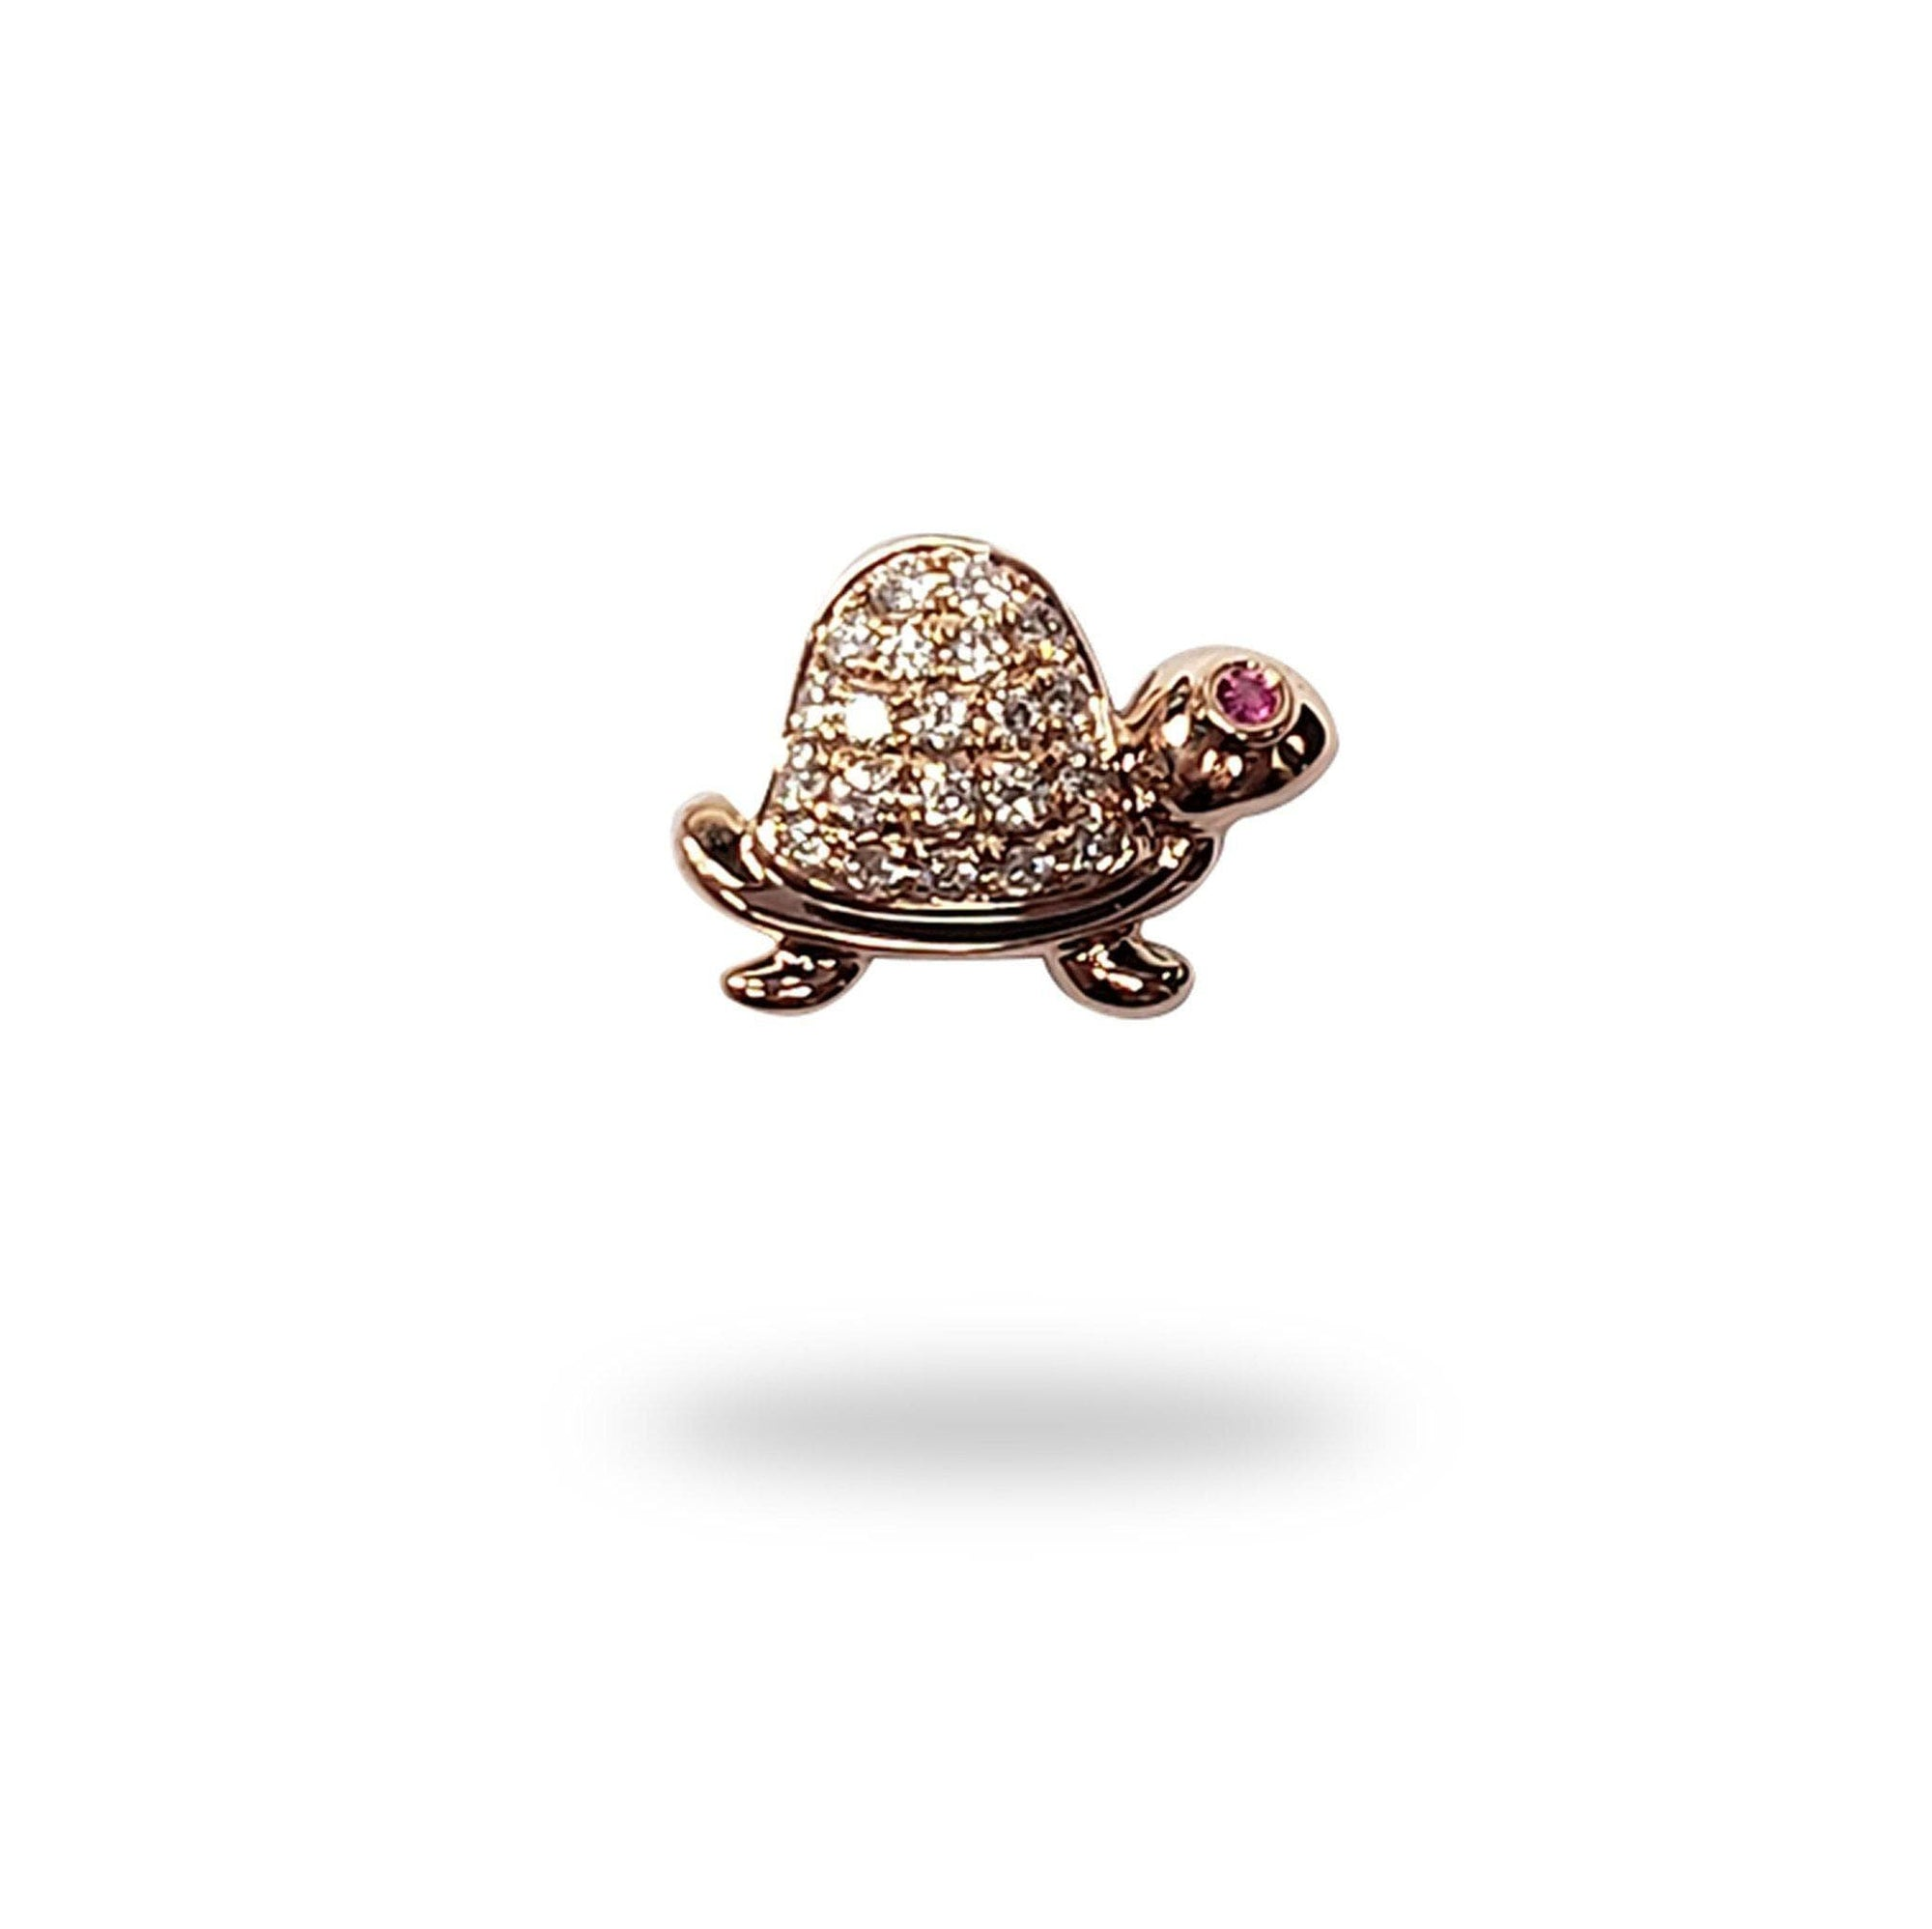 Turtle Sapphire Pendant with Diamonds in 14K Rose Gold - Maui Divers Jewelry